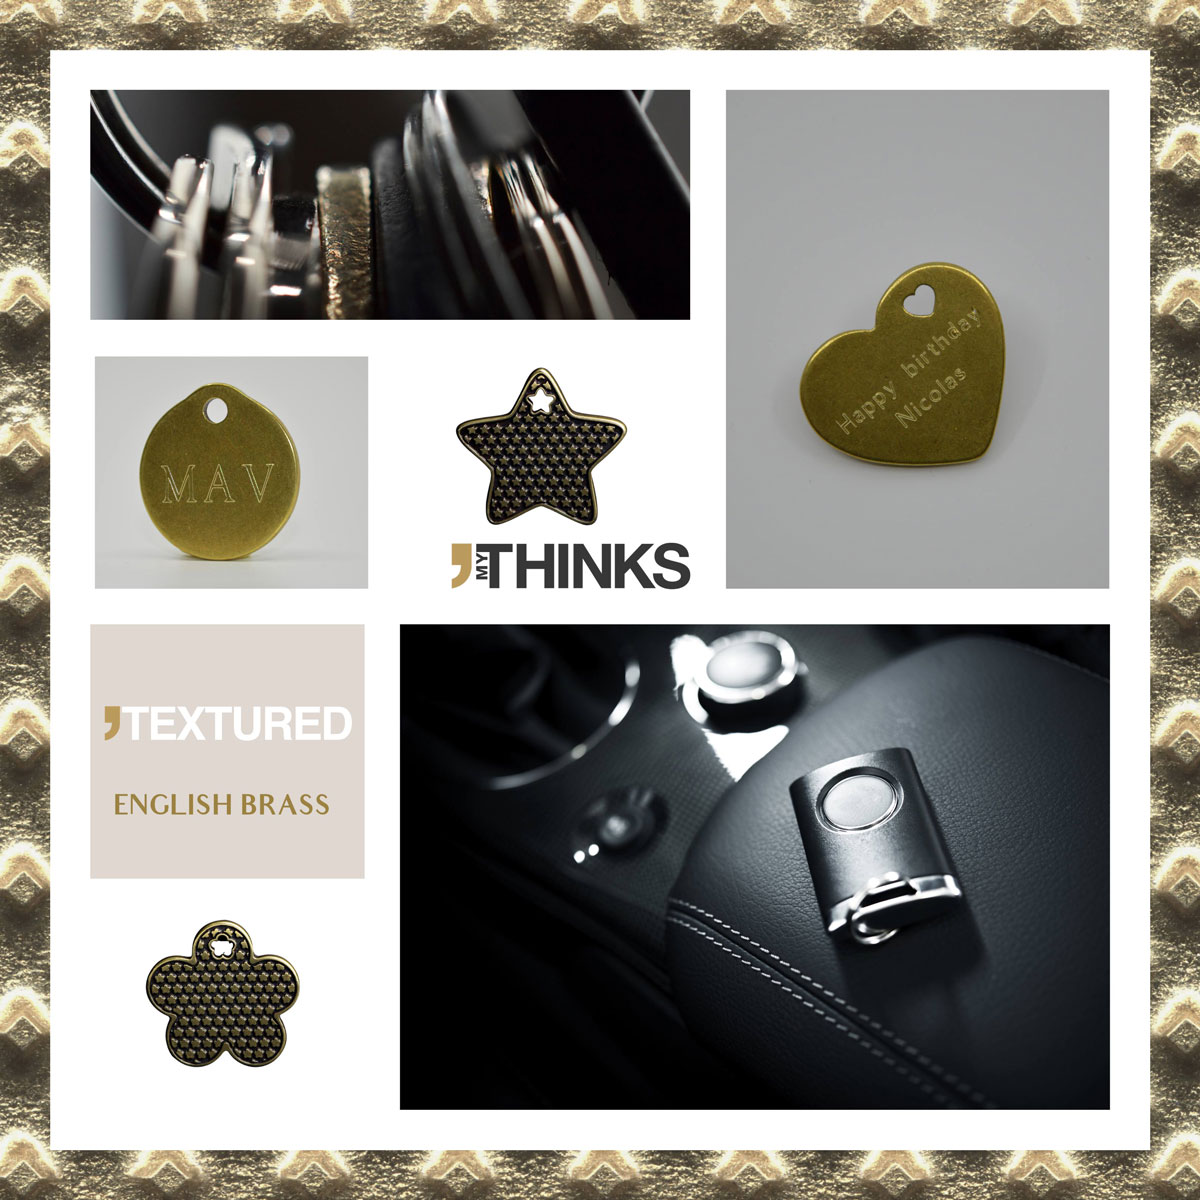 Mood board Textured collection gifts with English Brass finish on zamak charm personalized for the luxury car market